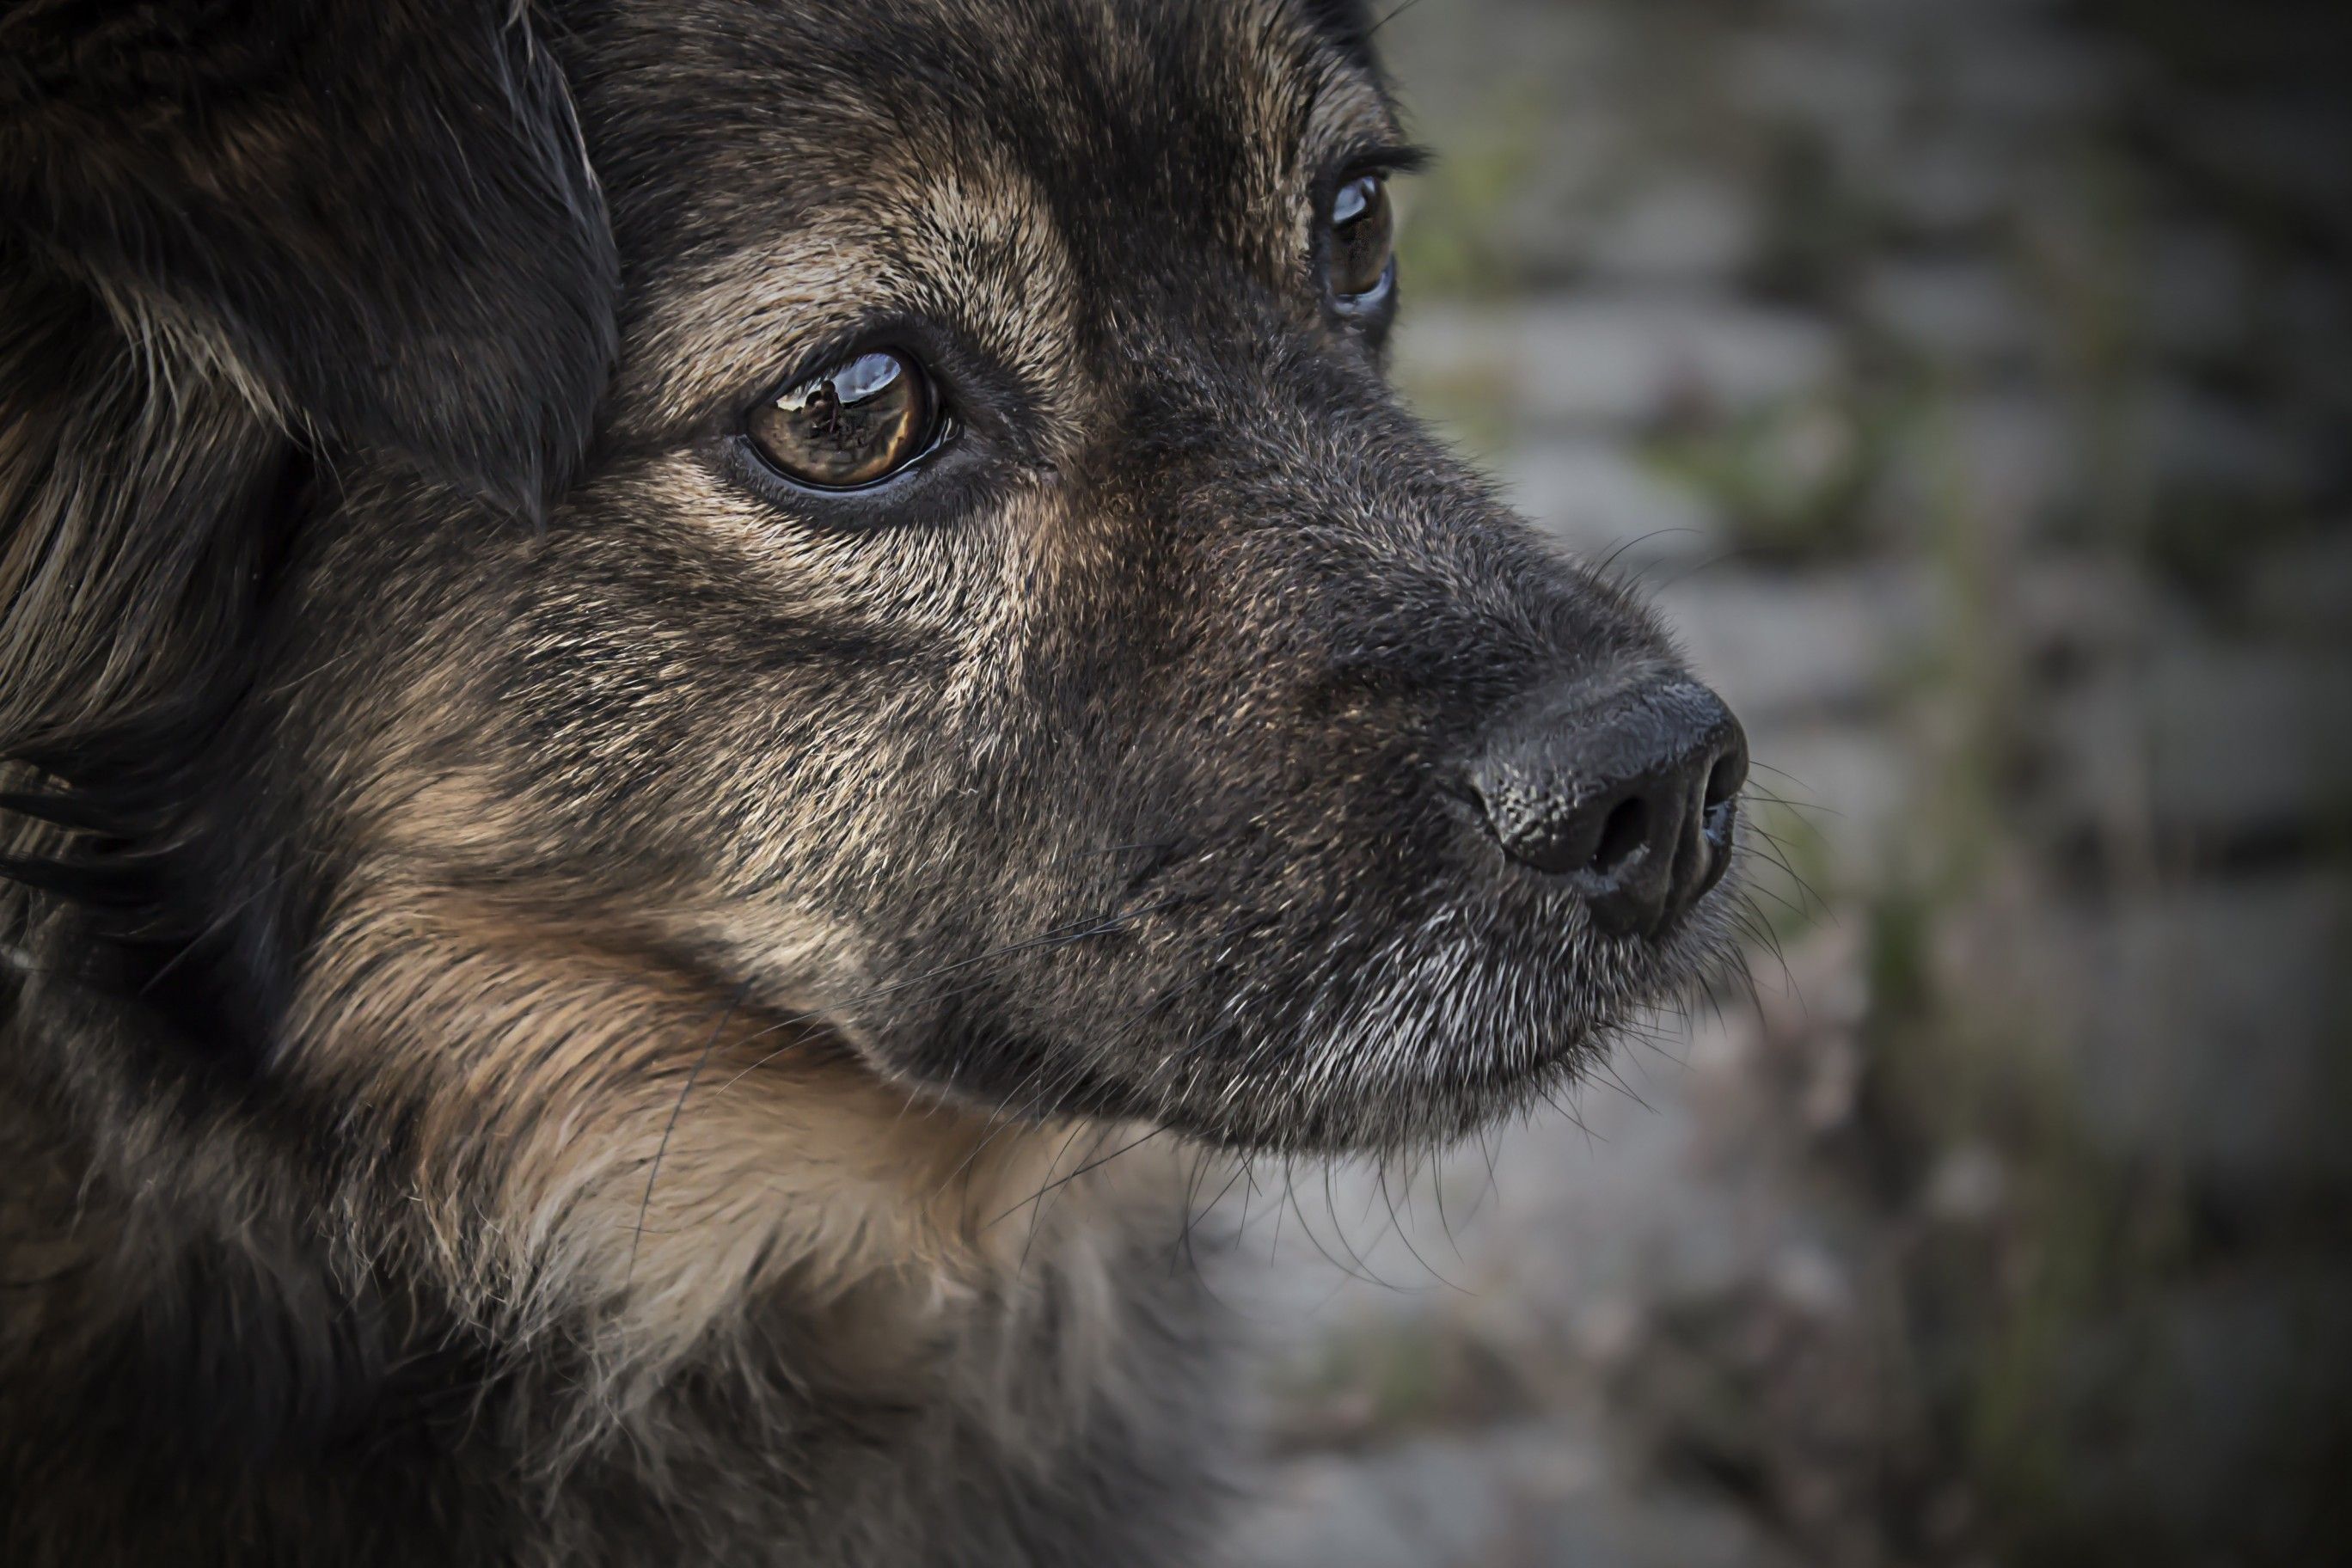 2736x1824 Download 2736x1824 Dog, Baby, Muzzle, Face View, Puppy Wallpapers ...